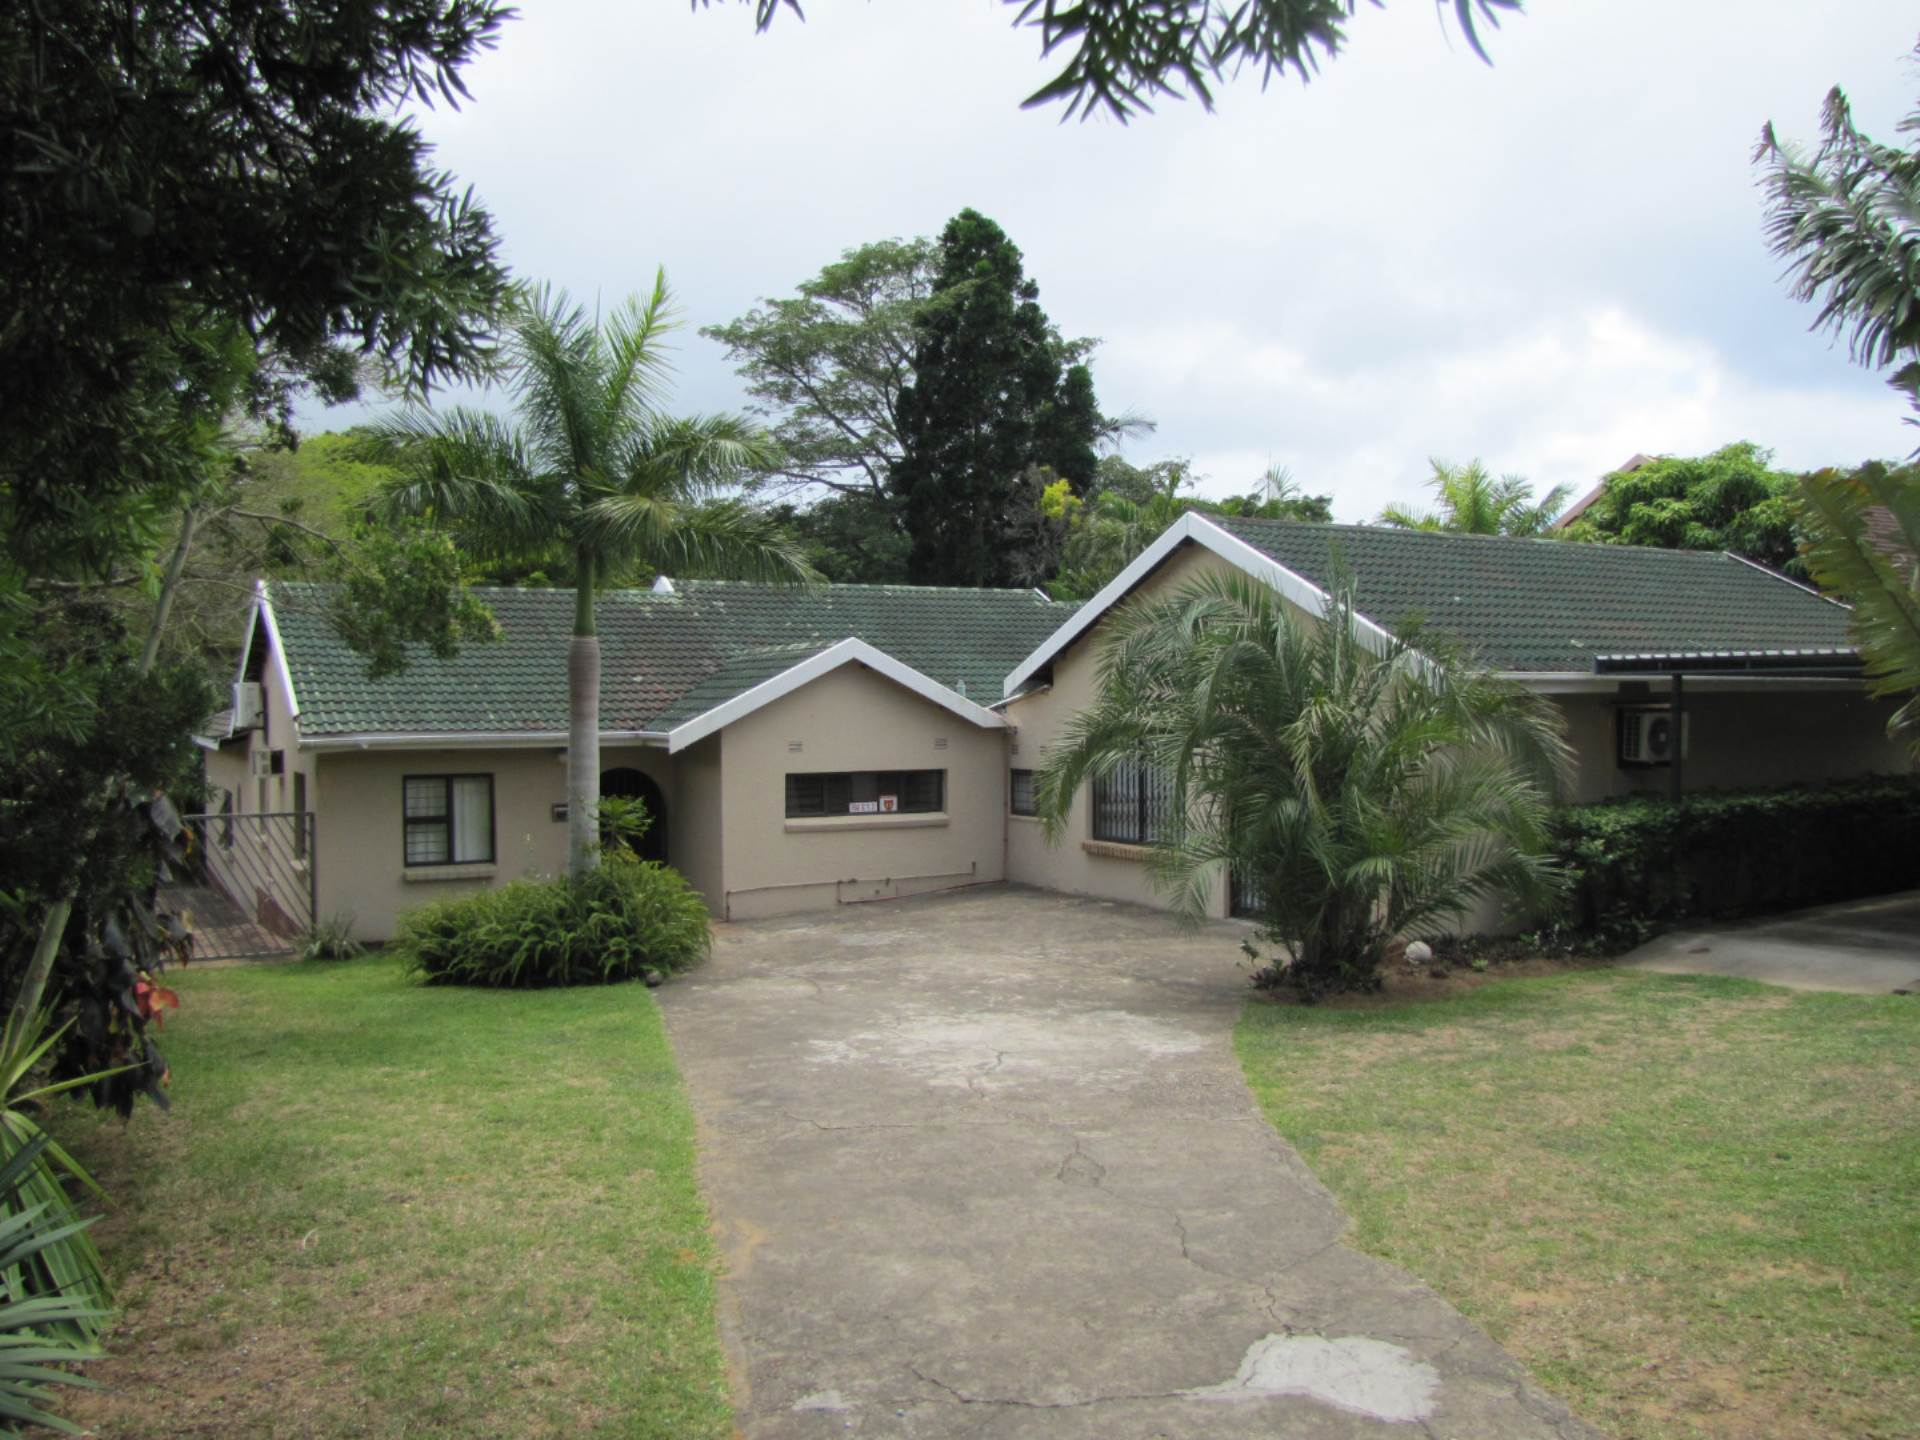 6 BedroomHouse For Sale In St Lucia